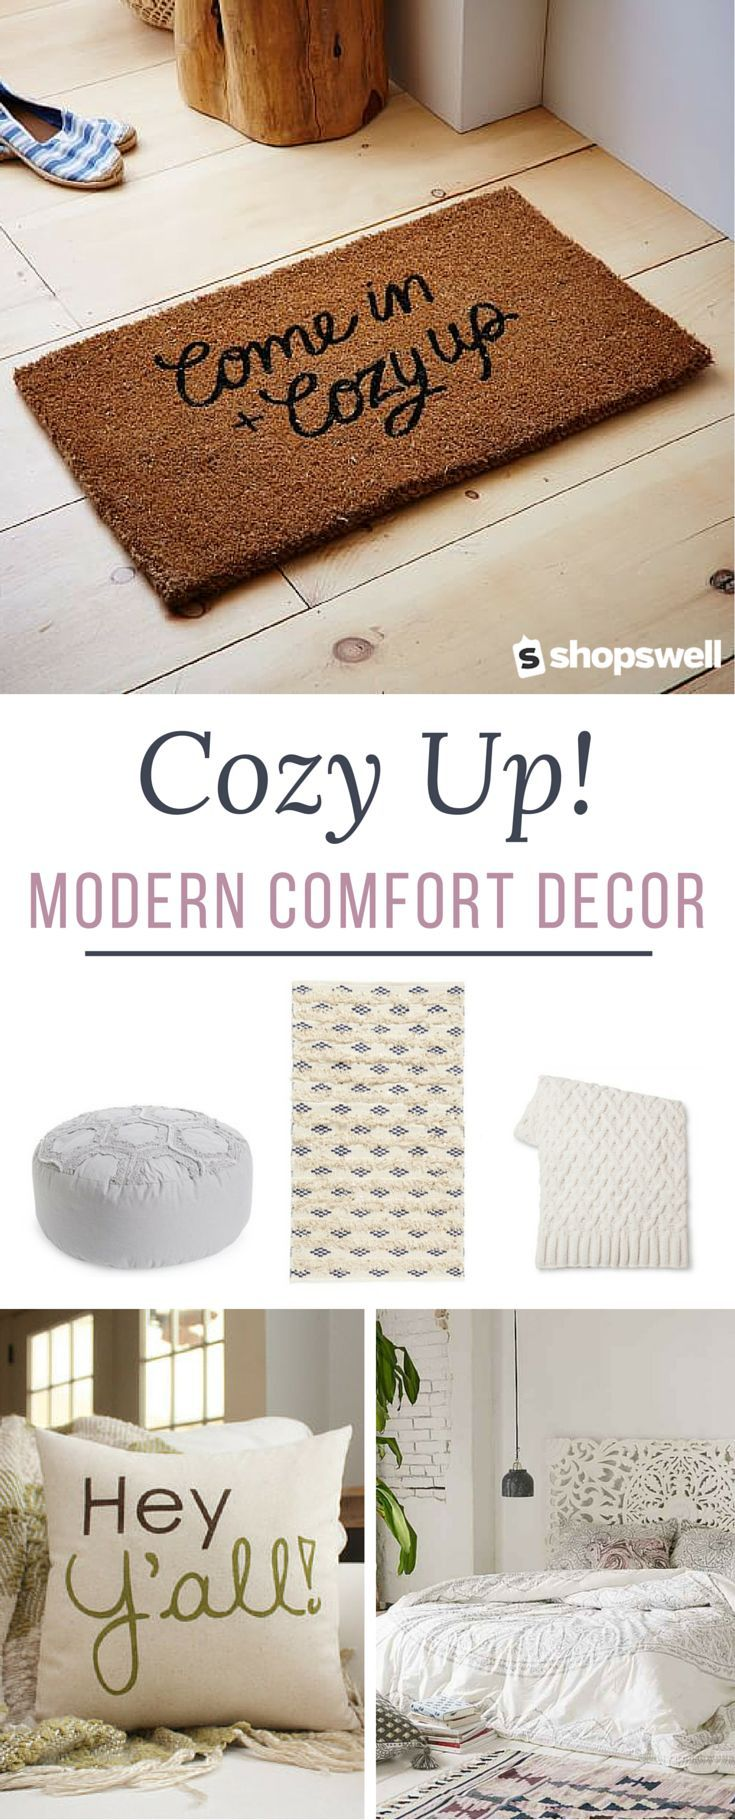 20 Cozy Decor Essentials That Will Make You Never Want To Leave Your Home.